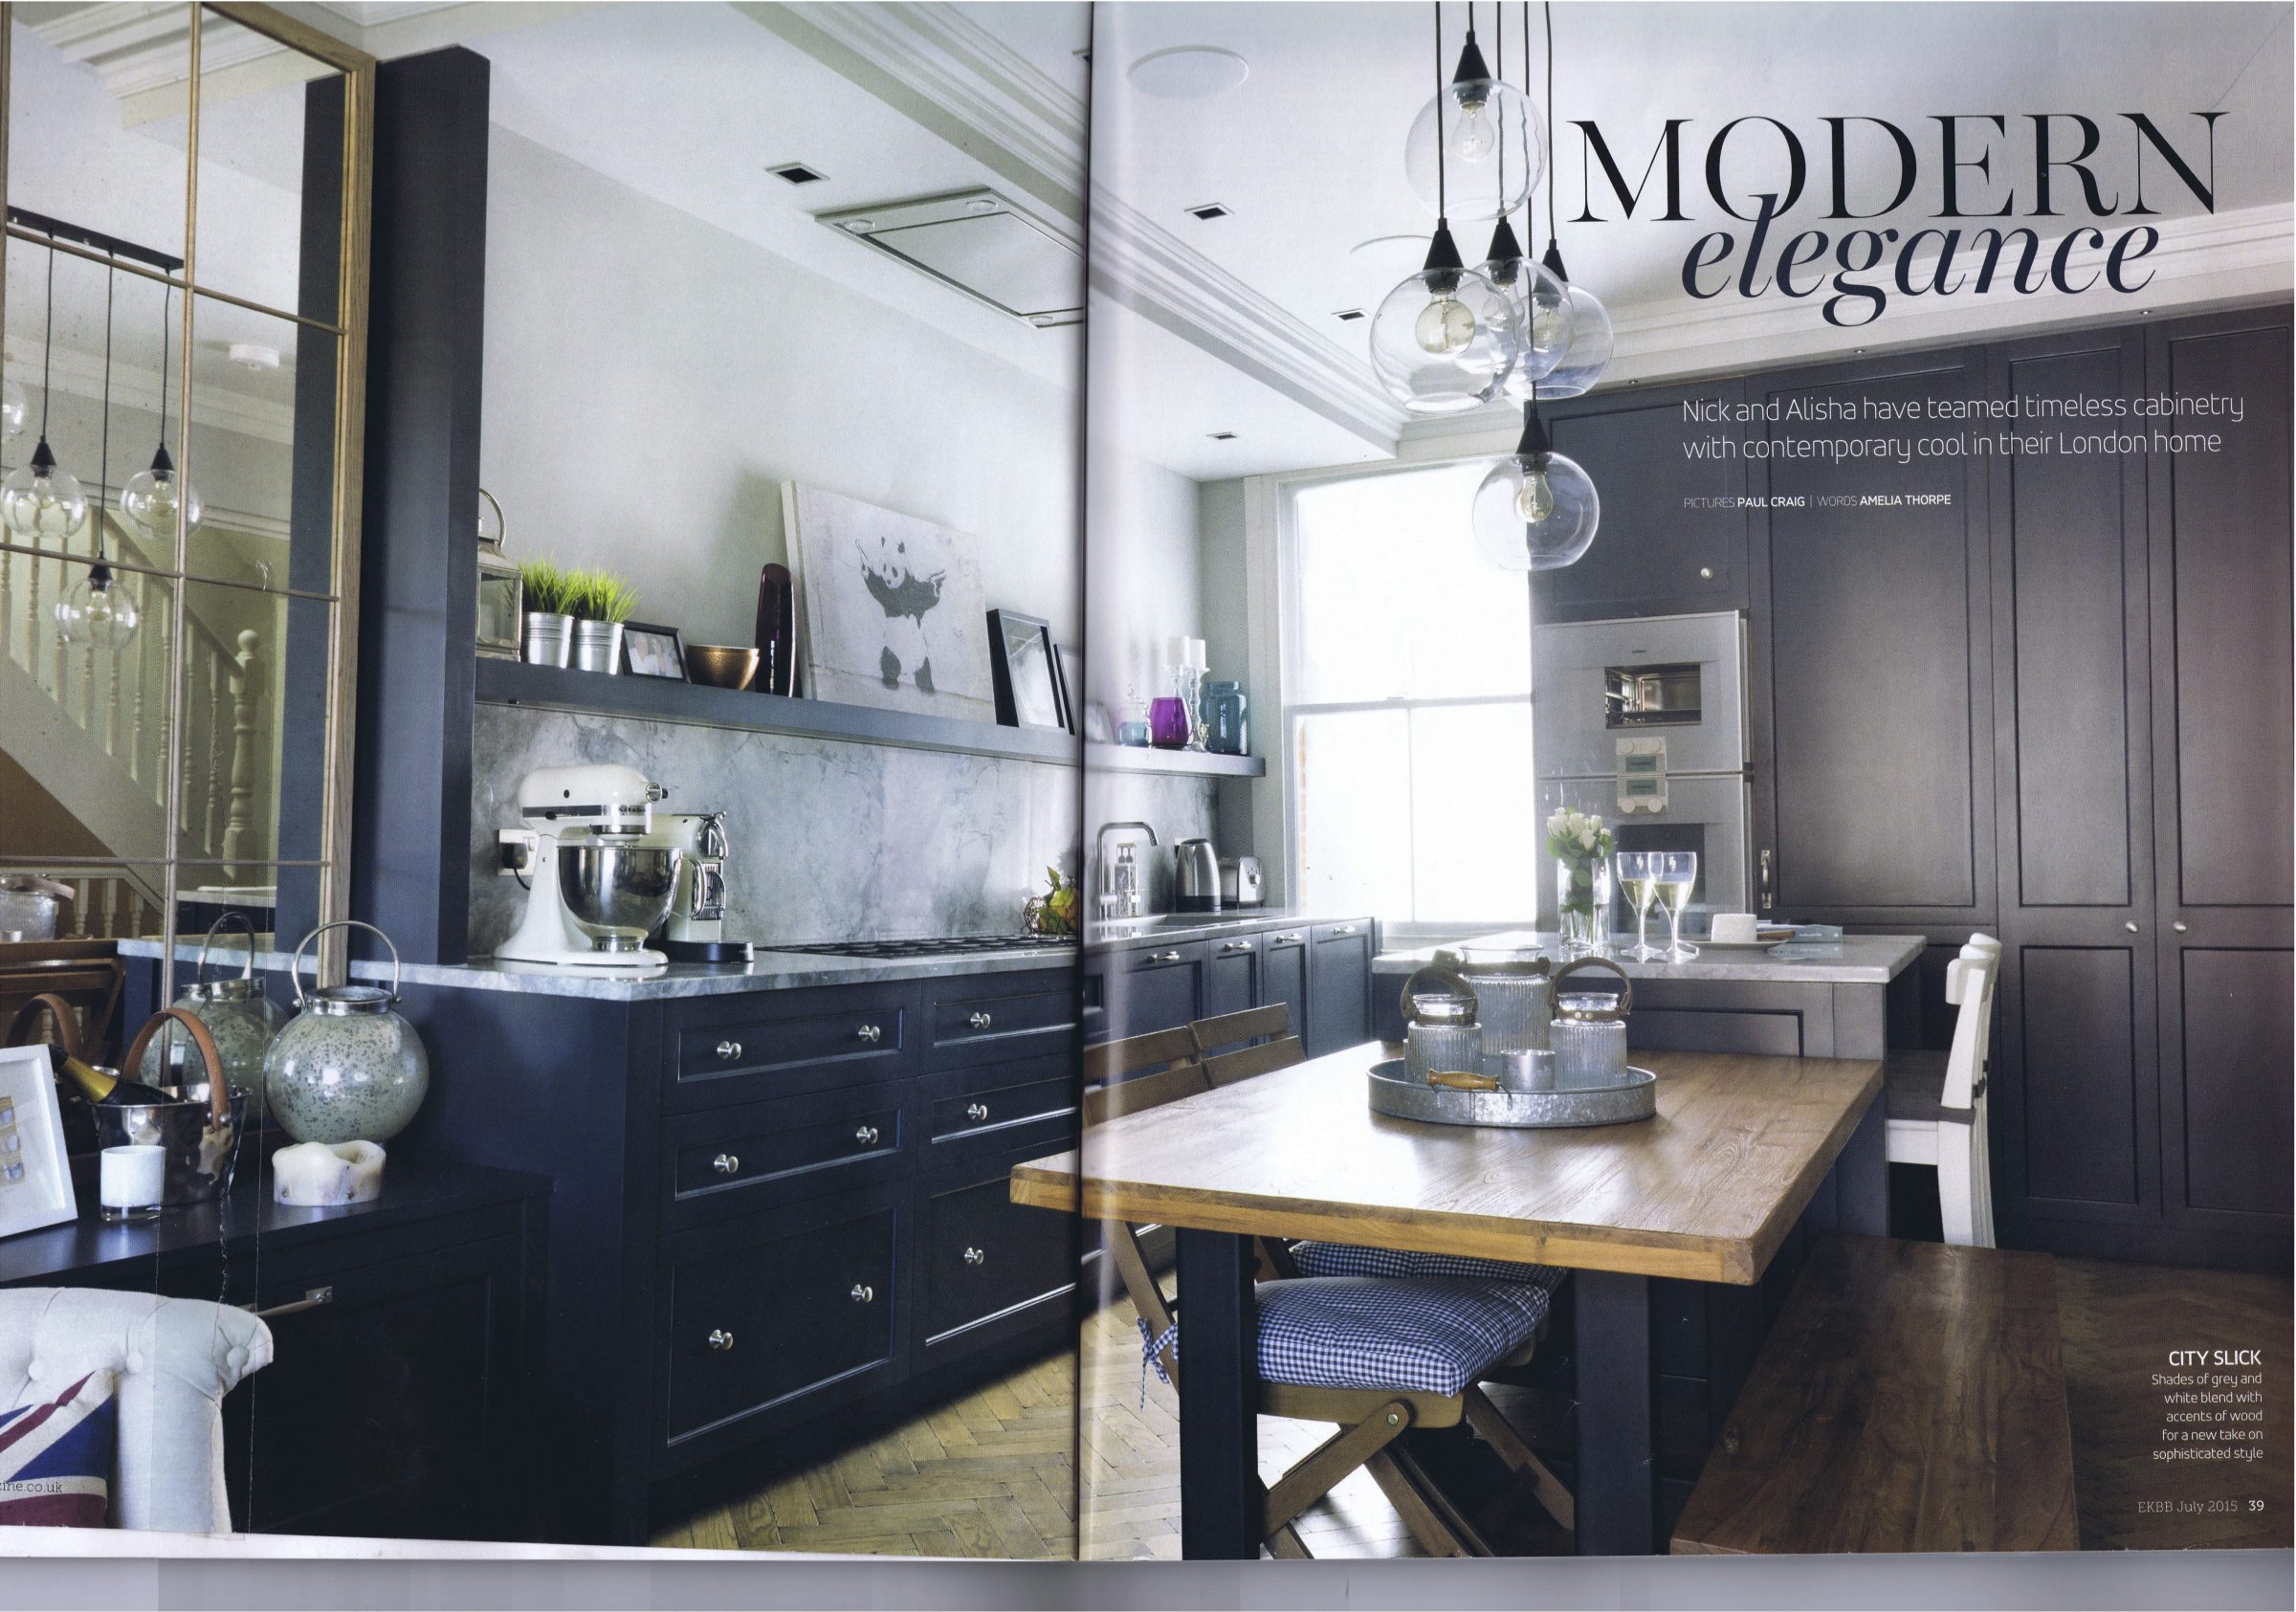 Essential kitchen bathroom bedroom magazine neil norton design for Essential kitchens and bathrooms